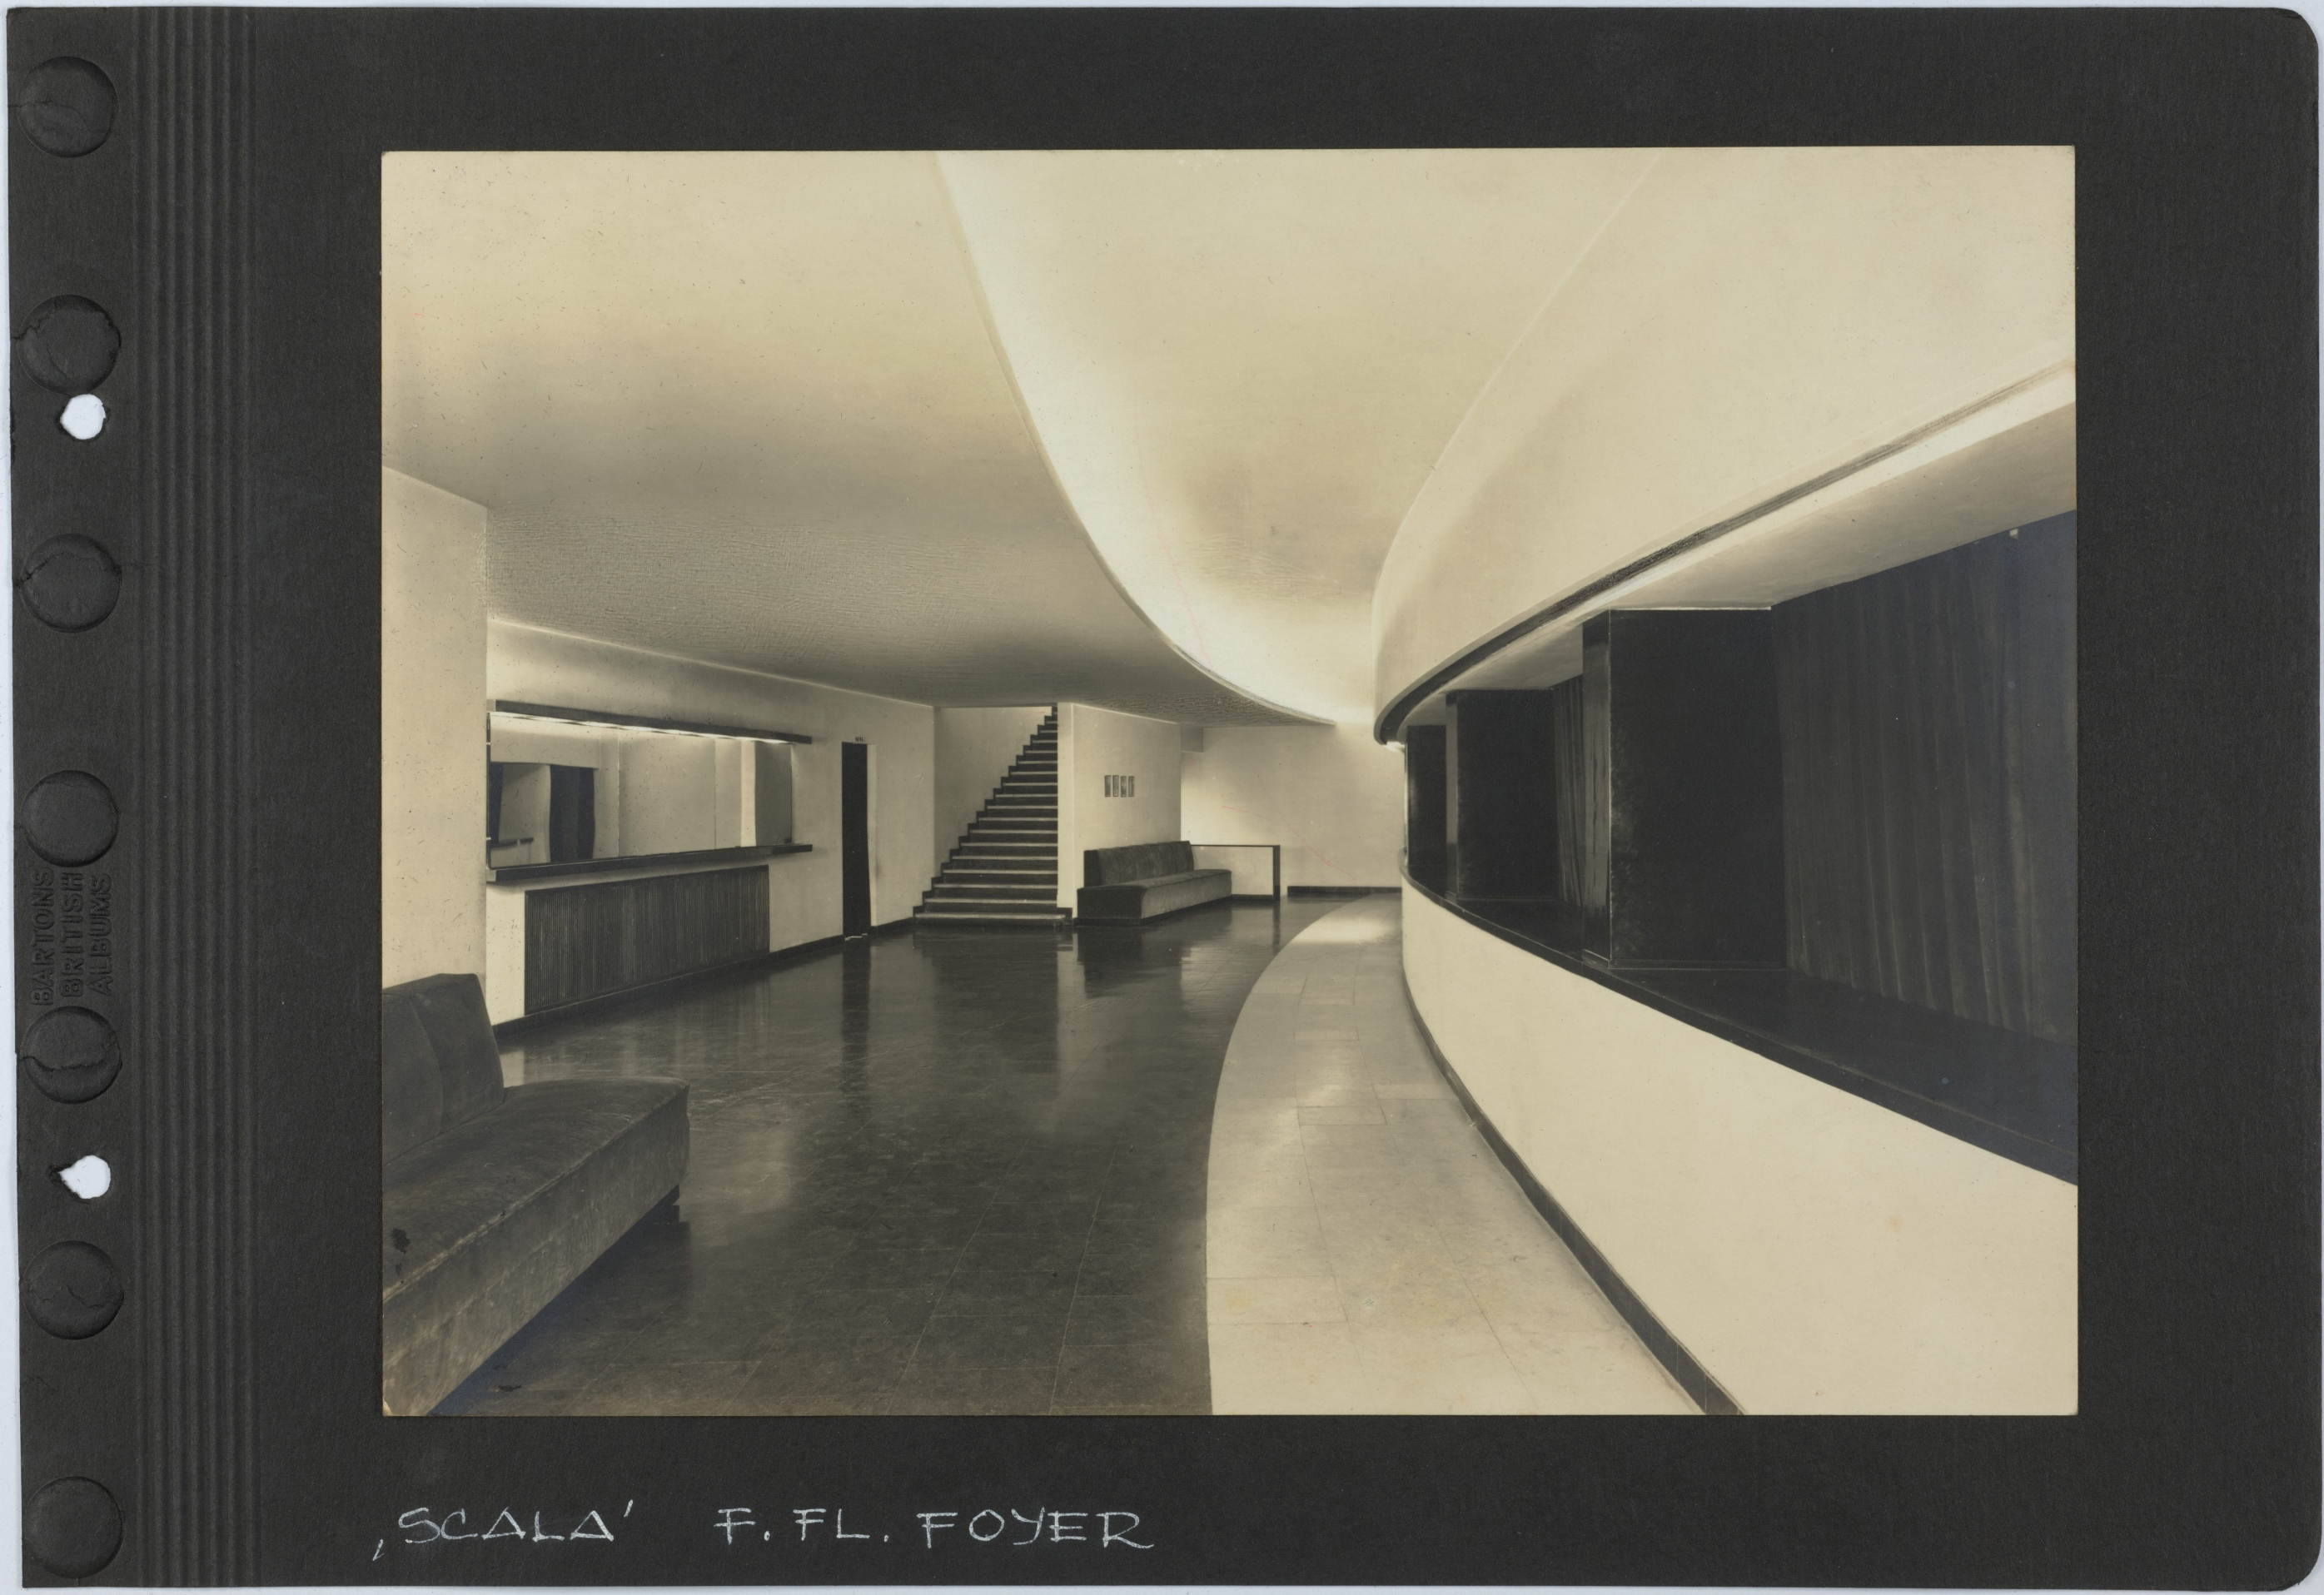 Scala F. fl. foyer